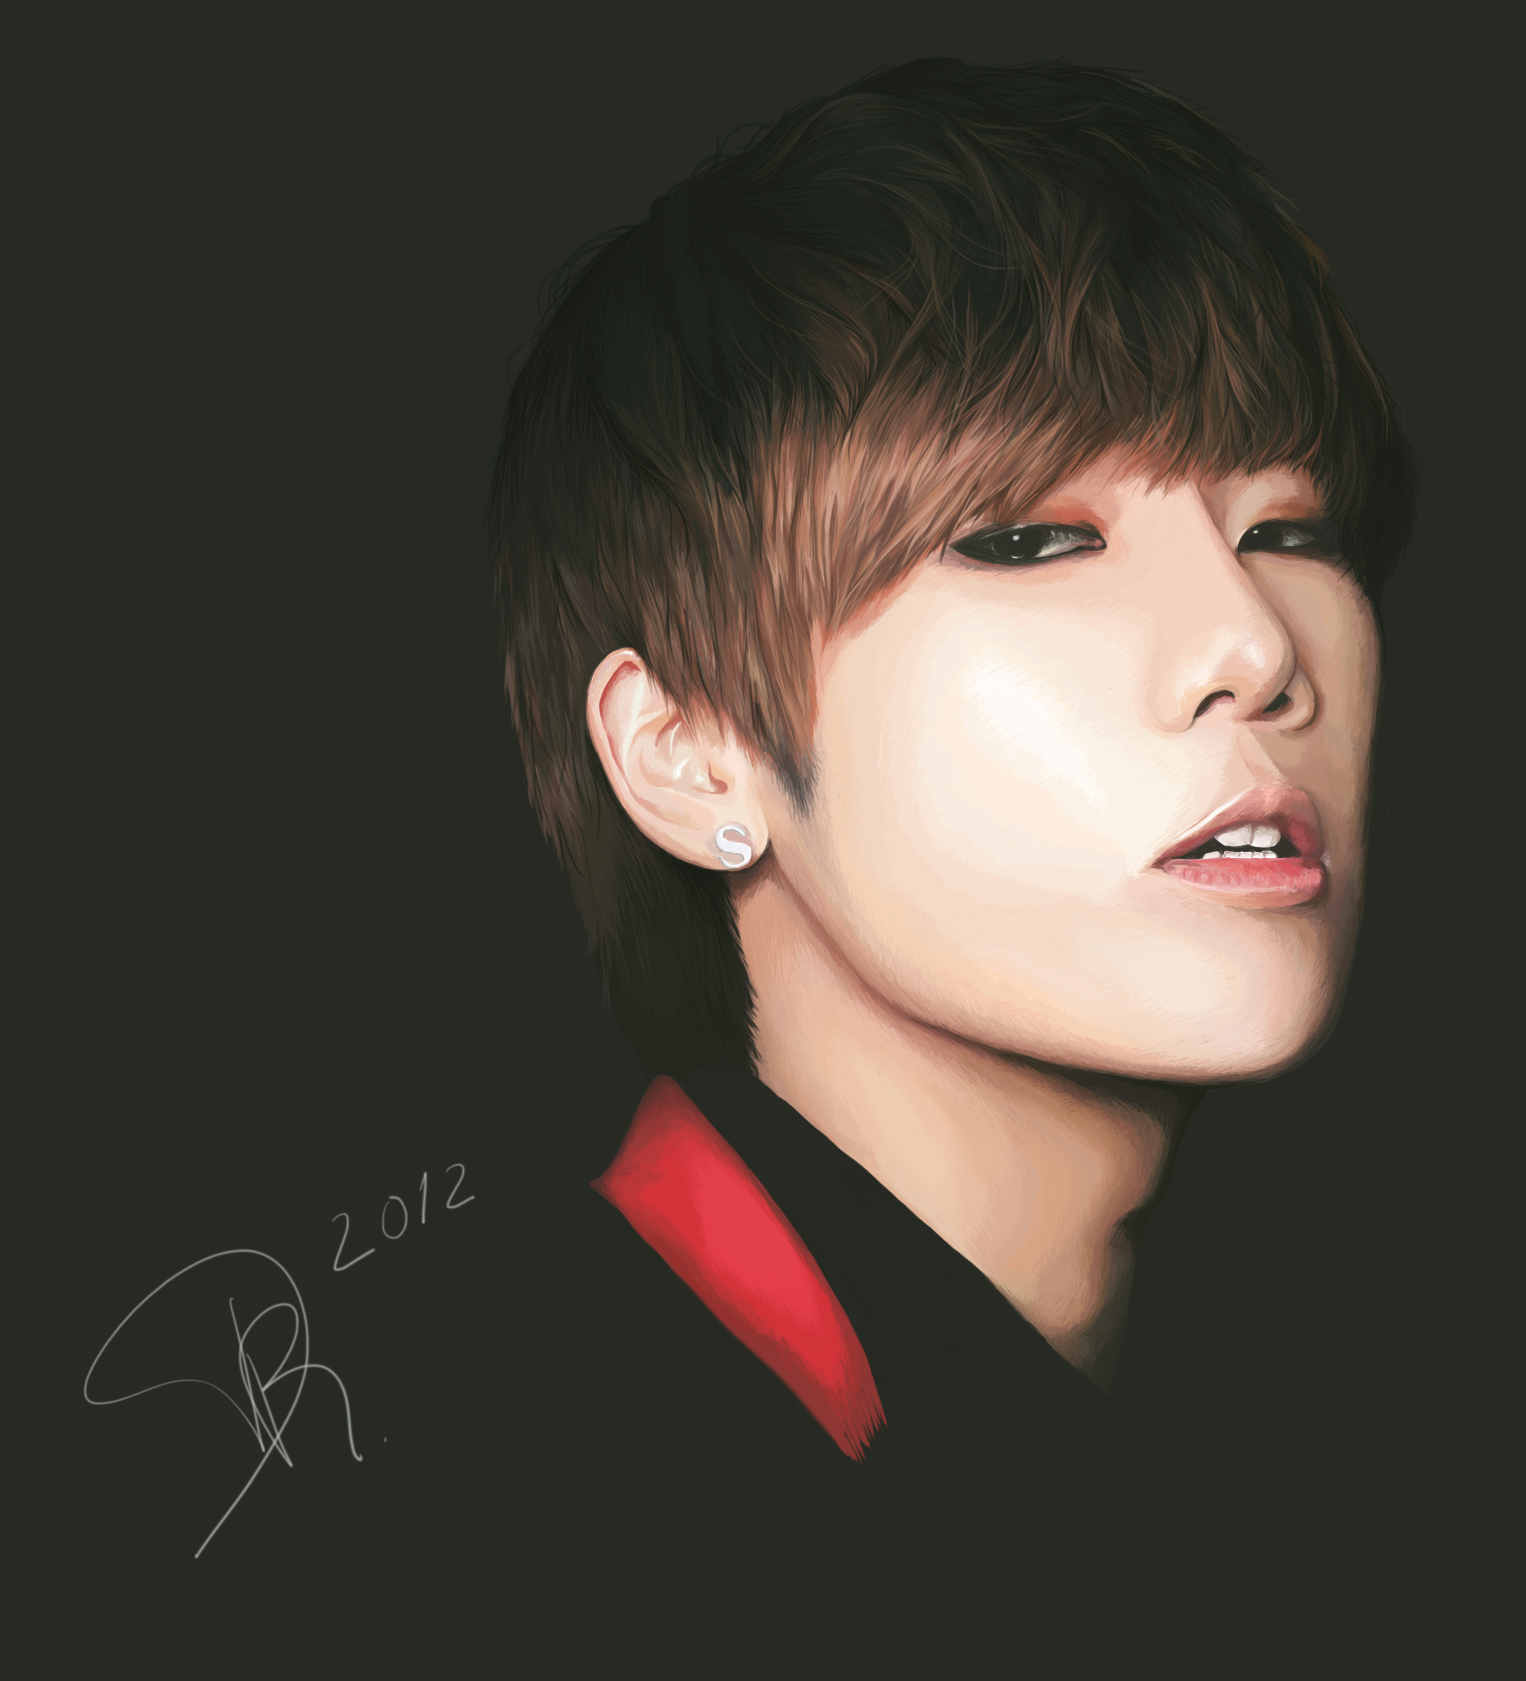 Sunggyu! ♥ - Sunggyu / Sungkyu Fan Art (35986495) - Fanpop